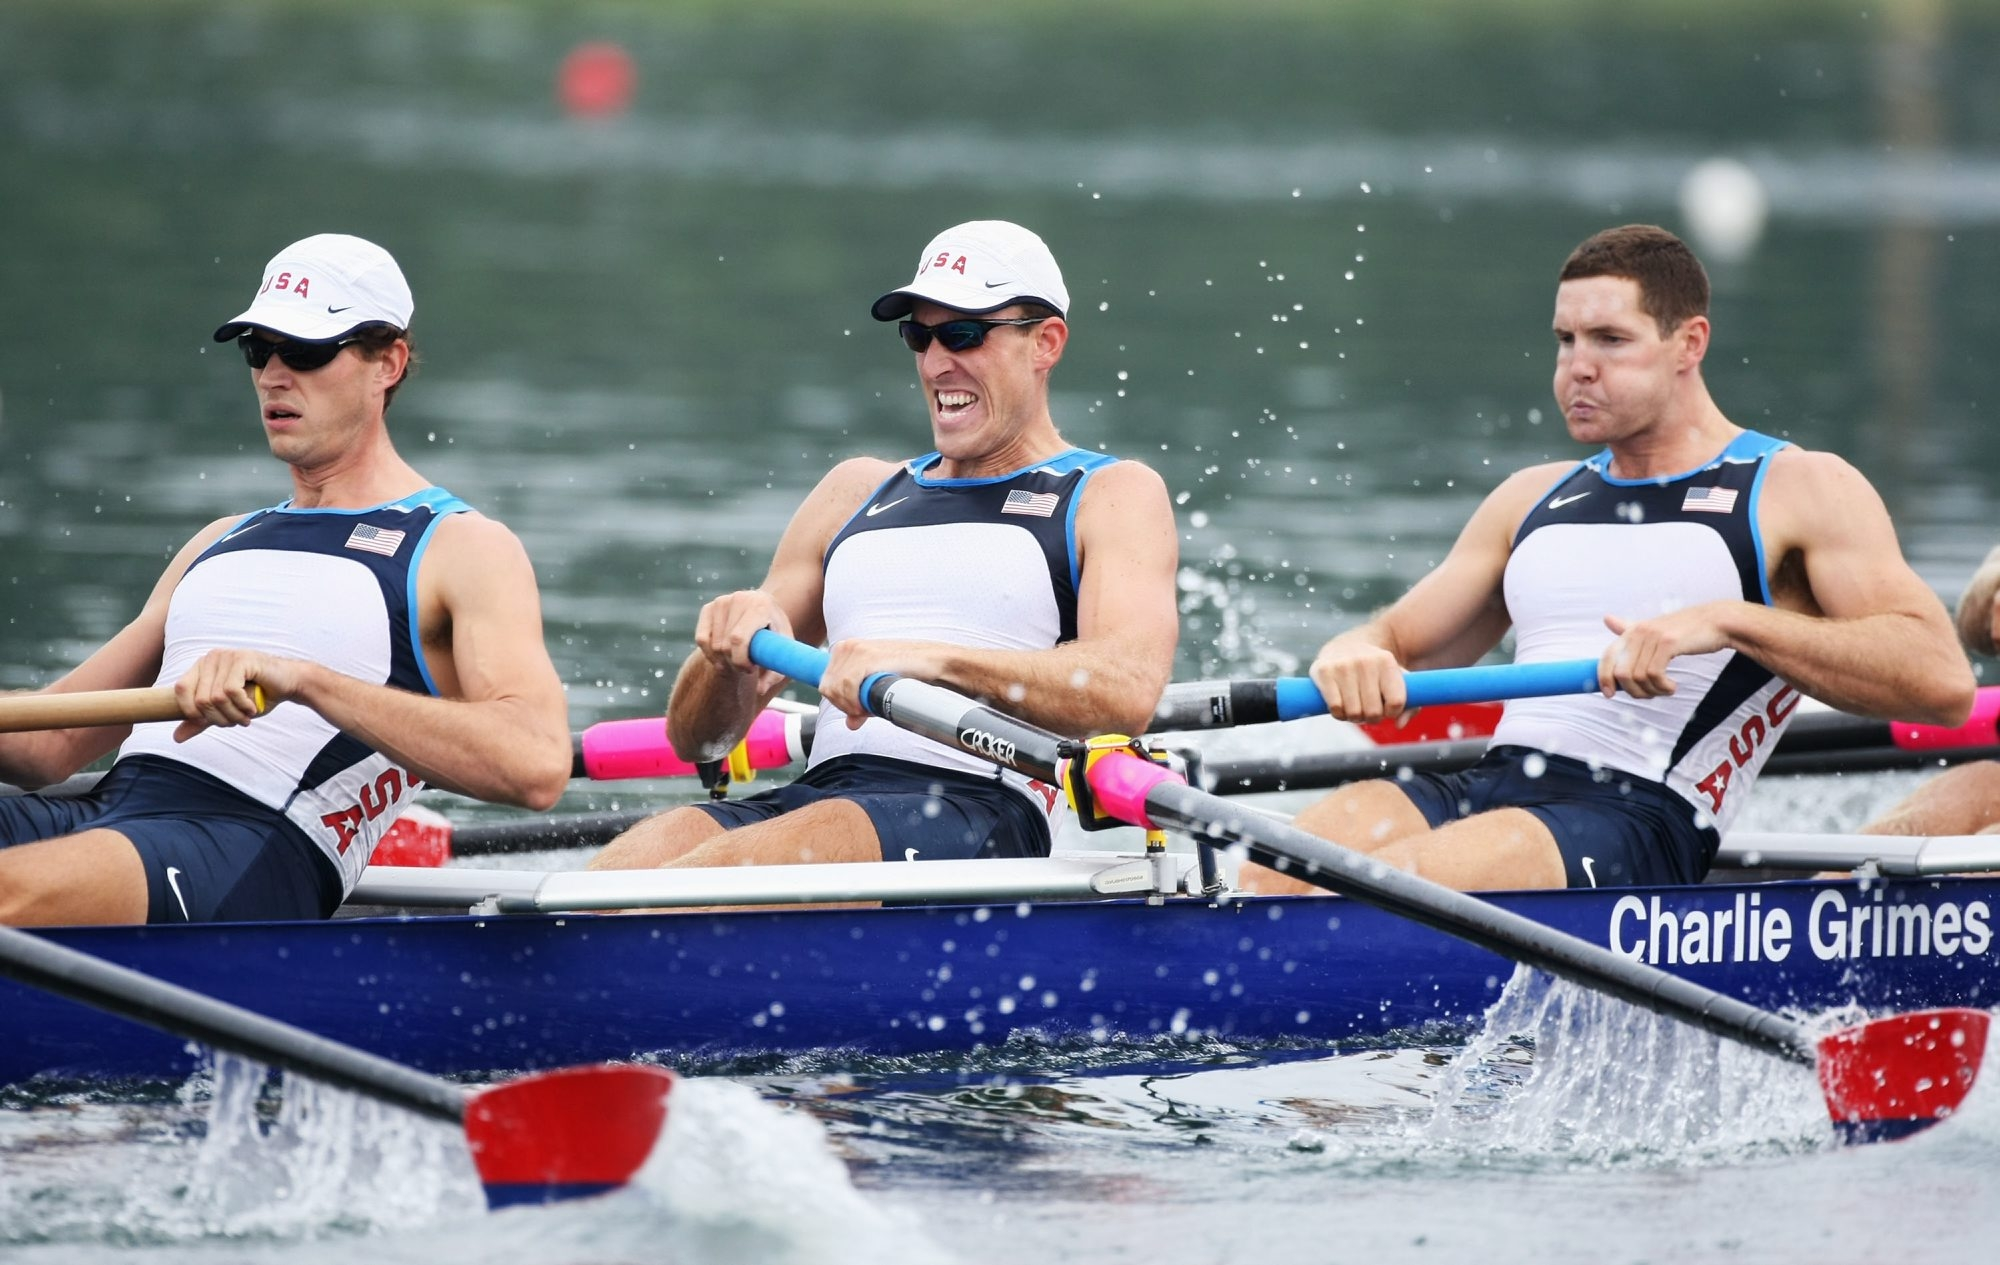 BEIJING - AUGUST 11:  (L-R) Josh Inman, Steven Coppola and Daniel Walsh of the United States compete in the Men's Eight Heat 2  at the Shunyi Olympic Rowing-Canoeing Park on Day 3 of the Beijing 2008 Olympic Games on August 11, 2008 in Beijing, China.  (Photo by Al Bello/Getty Images)